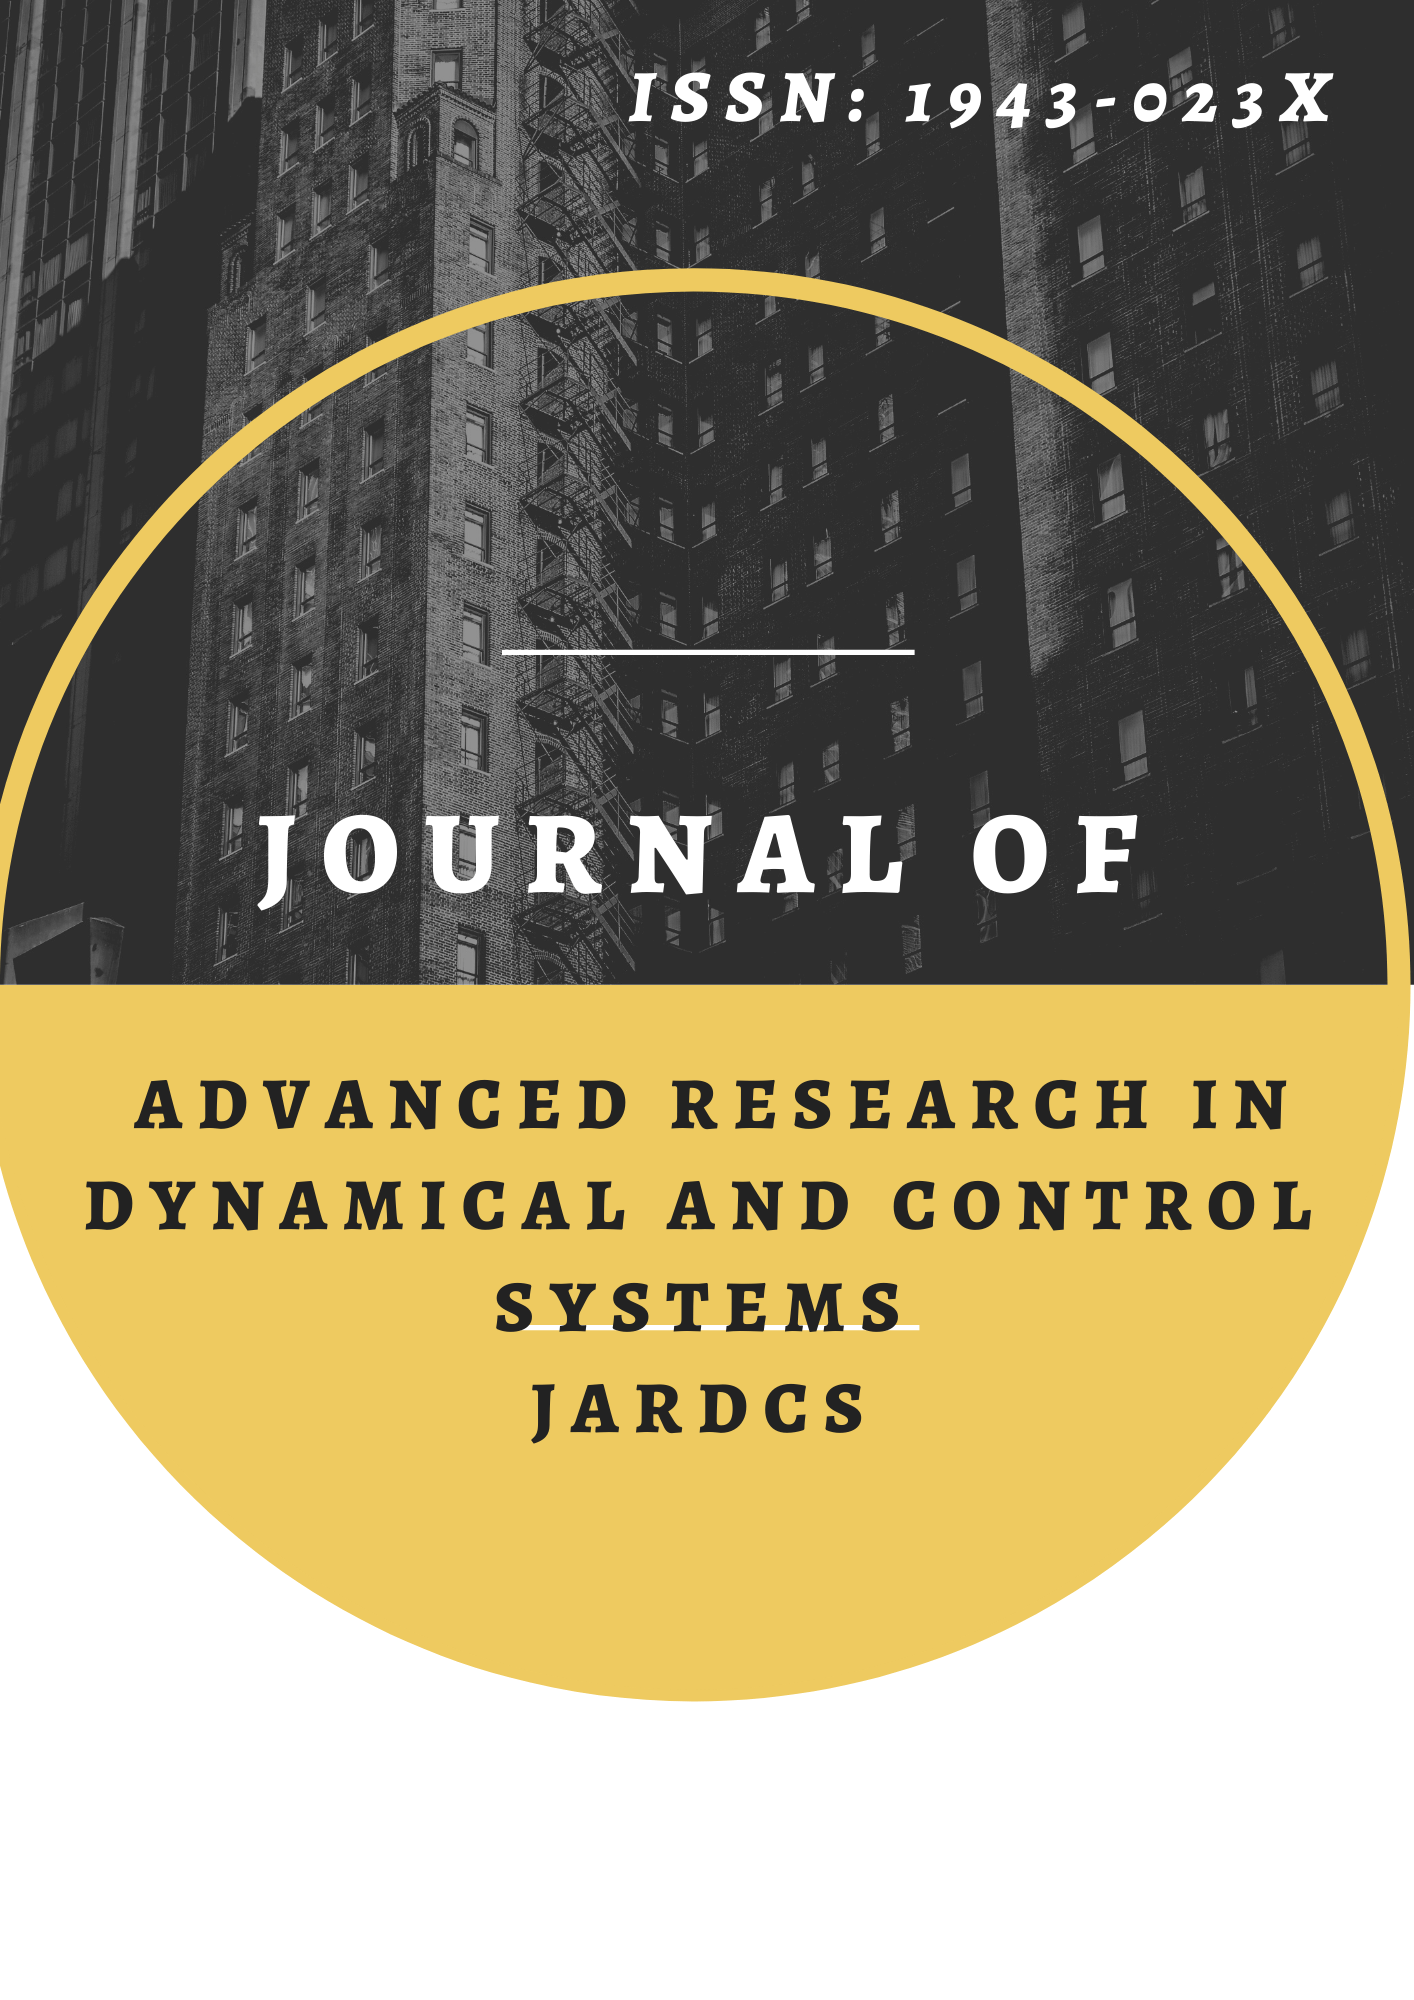 Journal of Advanced Research in Dynamical and Control Systems –JARDCS